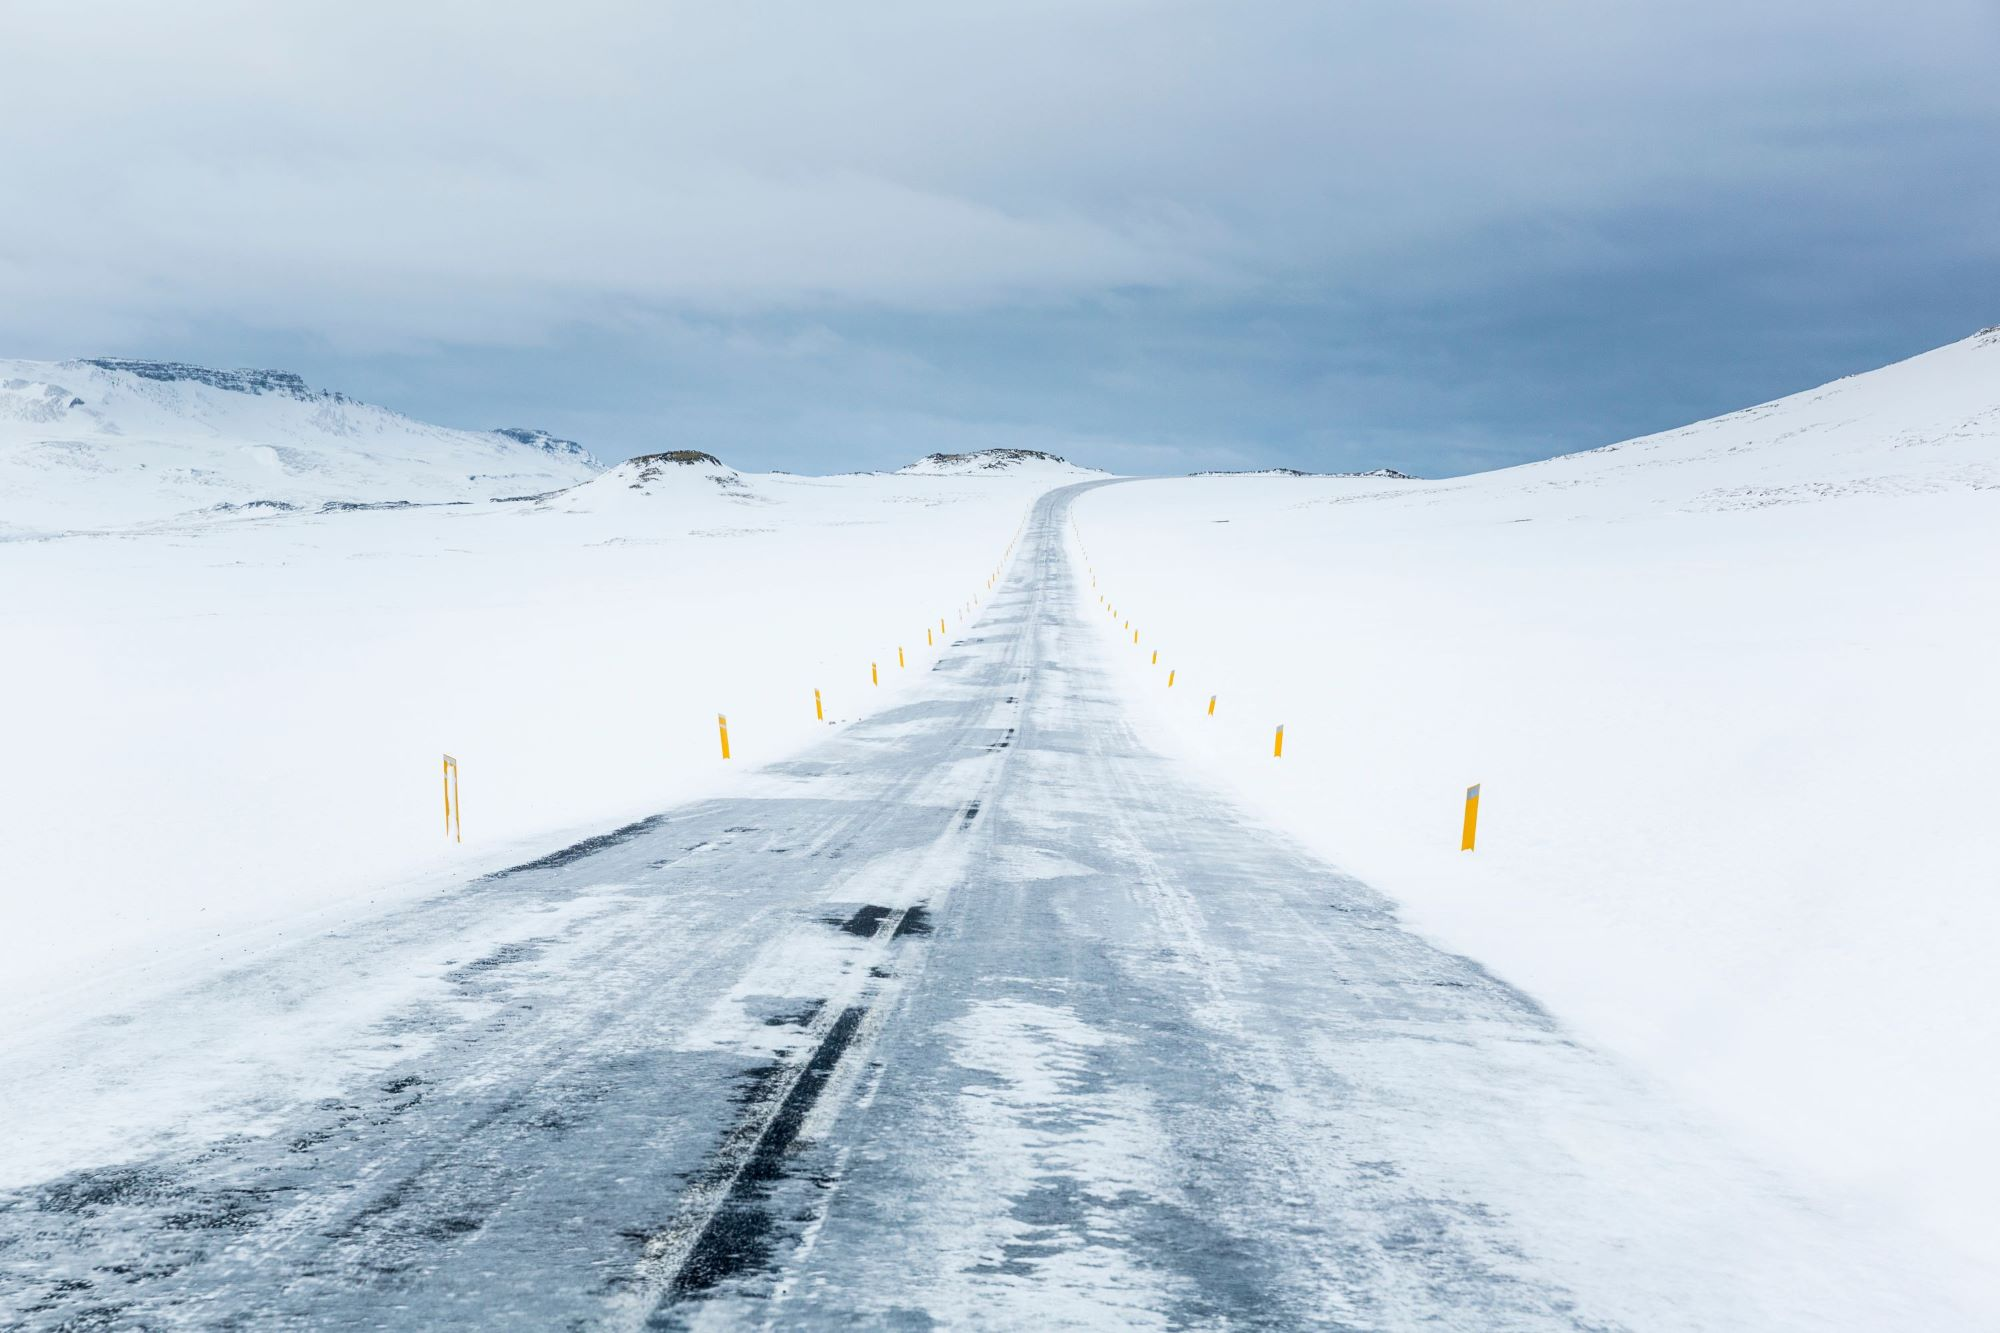 Icy roads in winter